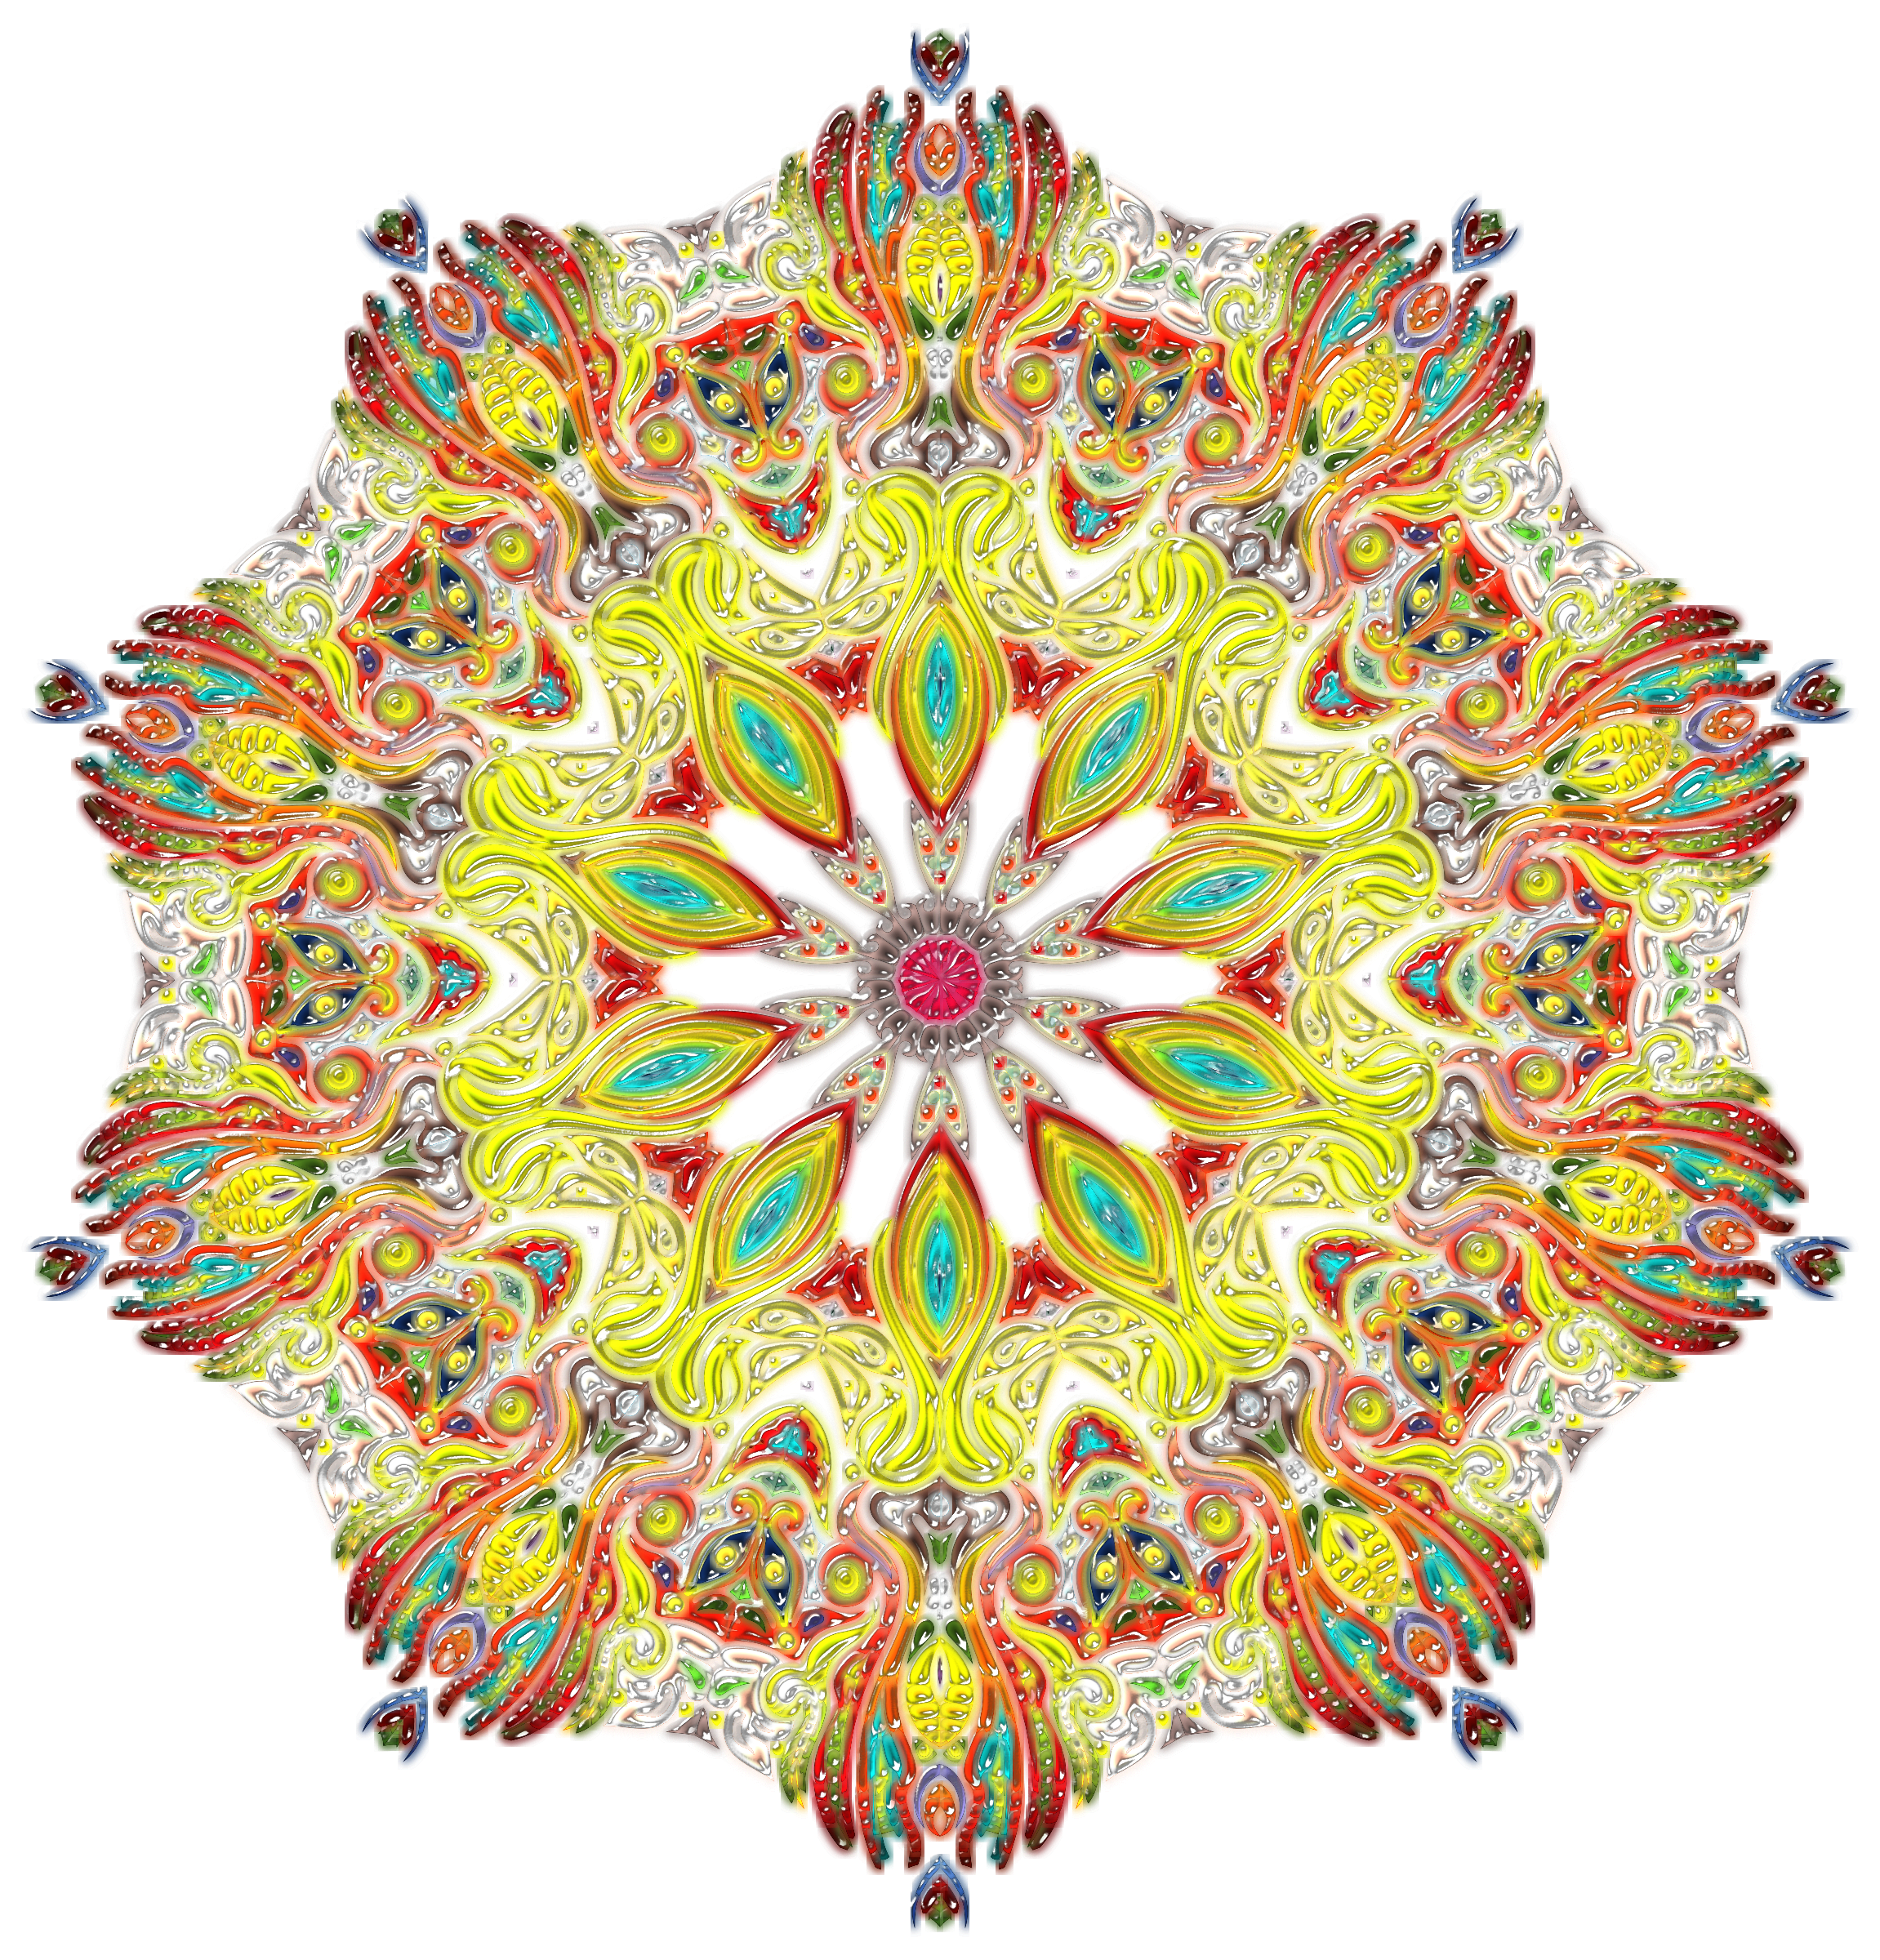 Intricate Colorful Pattern 3 Variation 2 by GDJ